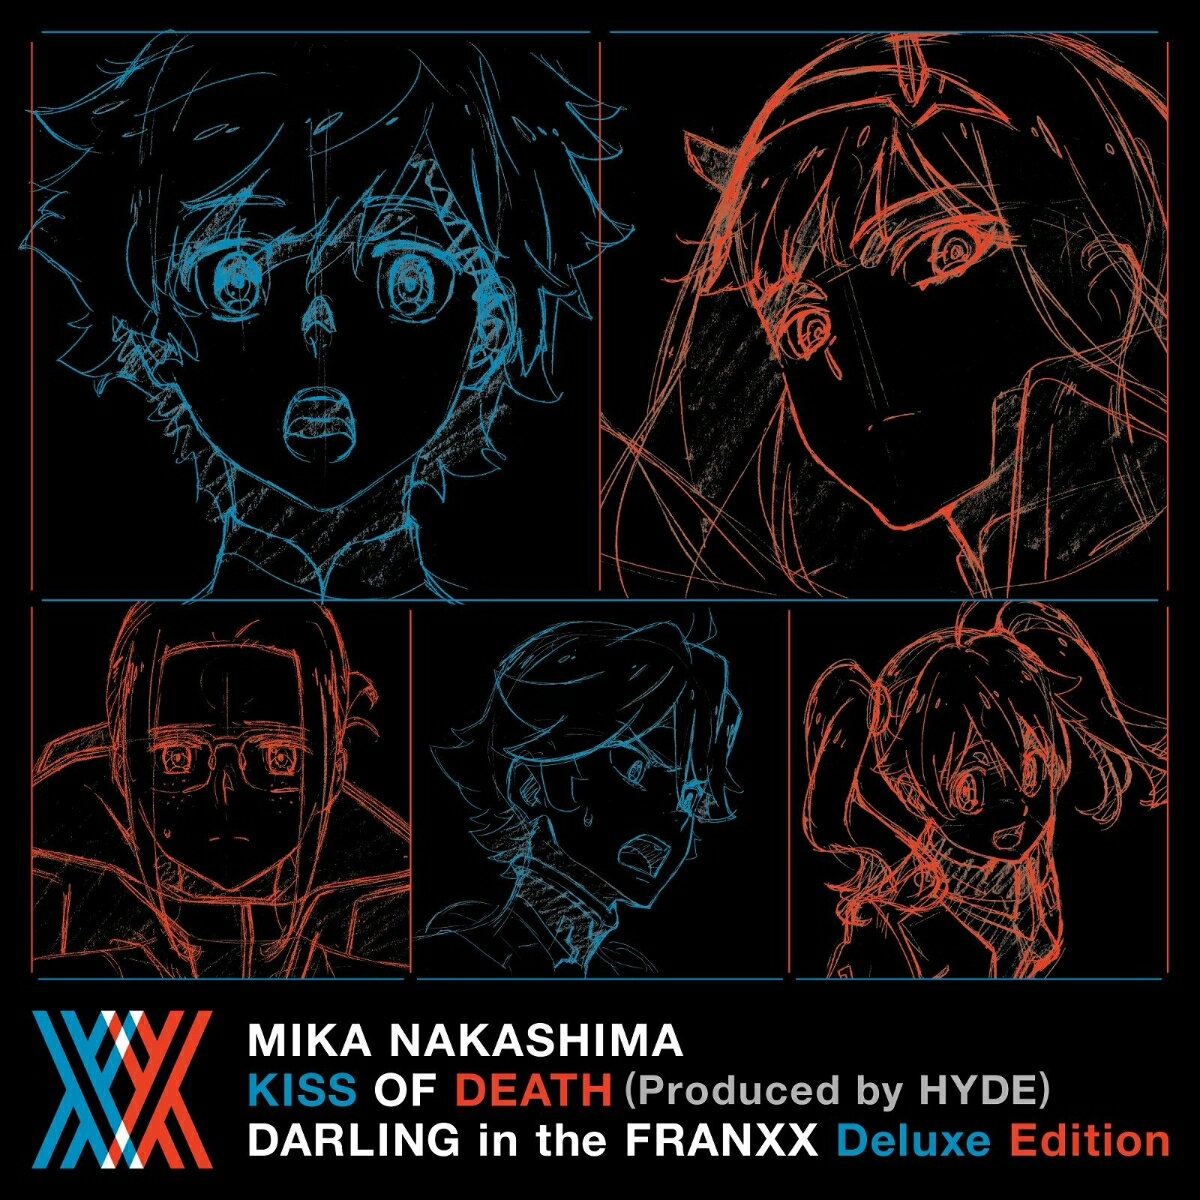 KISS OF DEATH (Produced by HYDE) ダーリン・イン・ザ・フランキス Deluxe Edition (完全生産限定盤) [ 中島美嘉 ]